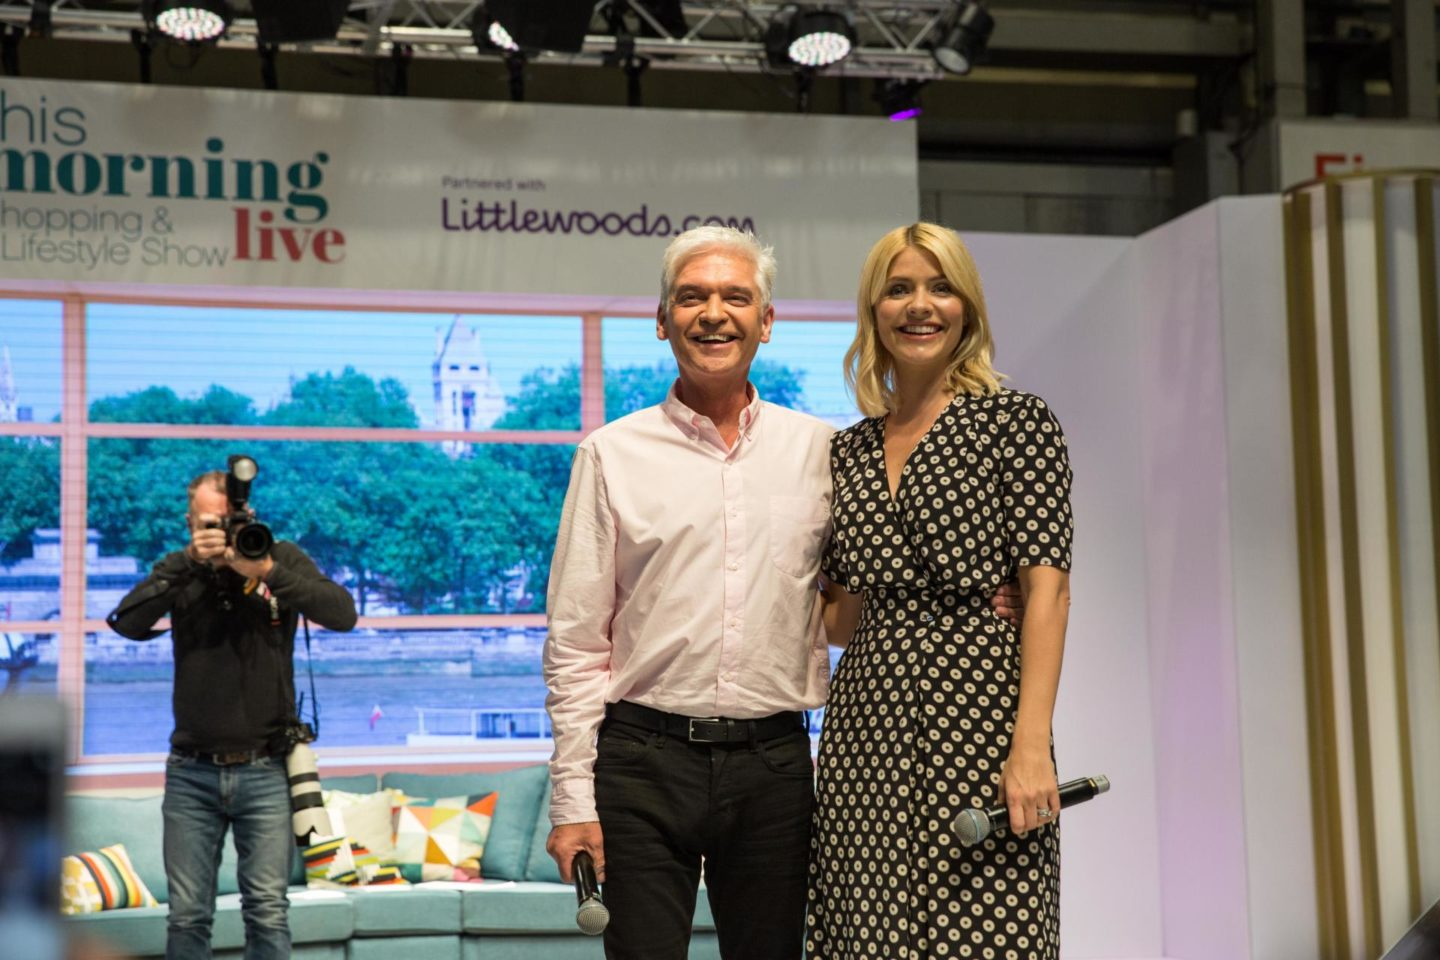 Win Tickets to This Morning Live at The NEC - Rachel Nicole UK Blogger